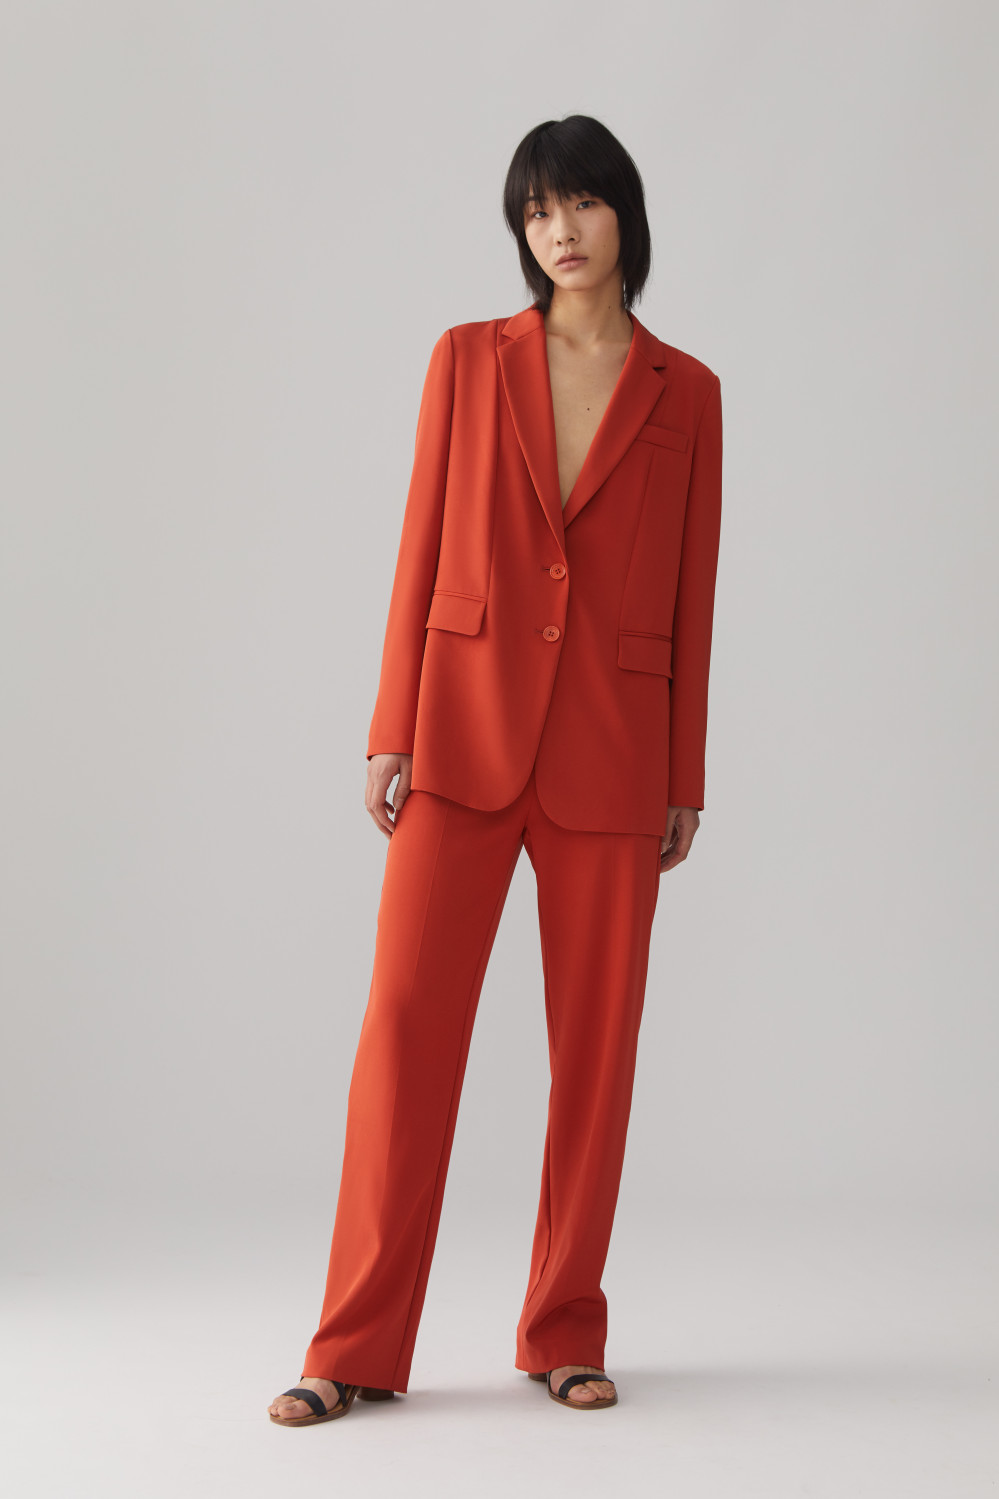 Icicle Women Iconic Soft Suit 01